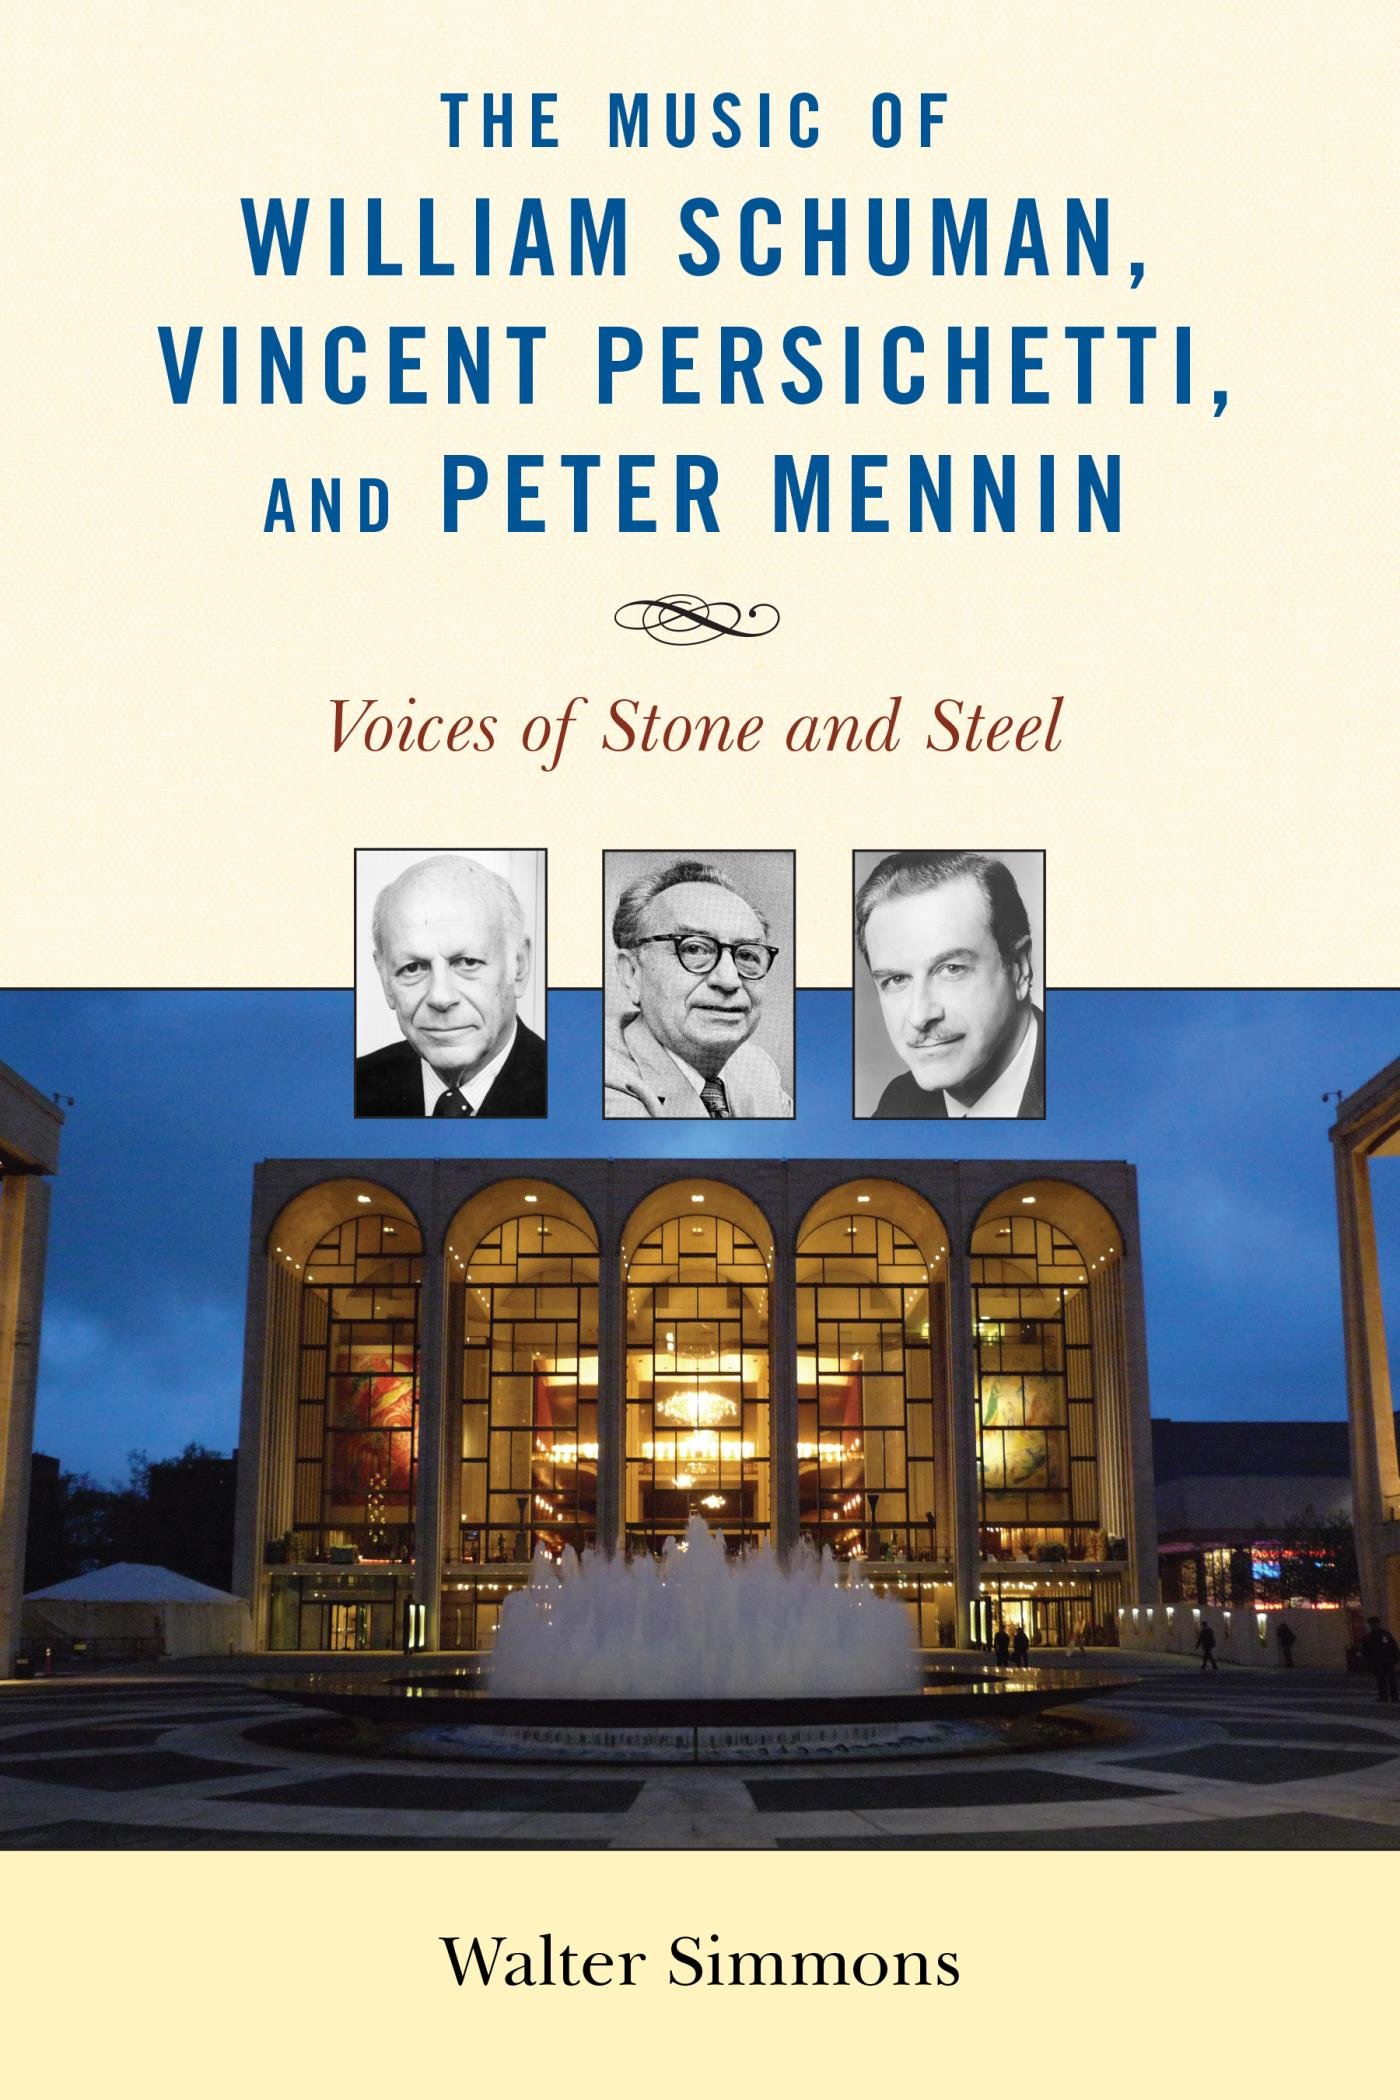 The Music Of William Schuman Vincent Persichetti And Peter Mennin  Voices Of Stone And Steel  Modern Traditionalist Classical Music   English Edition